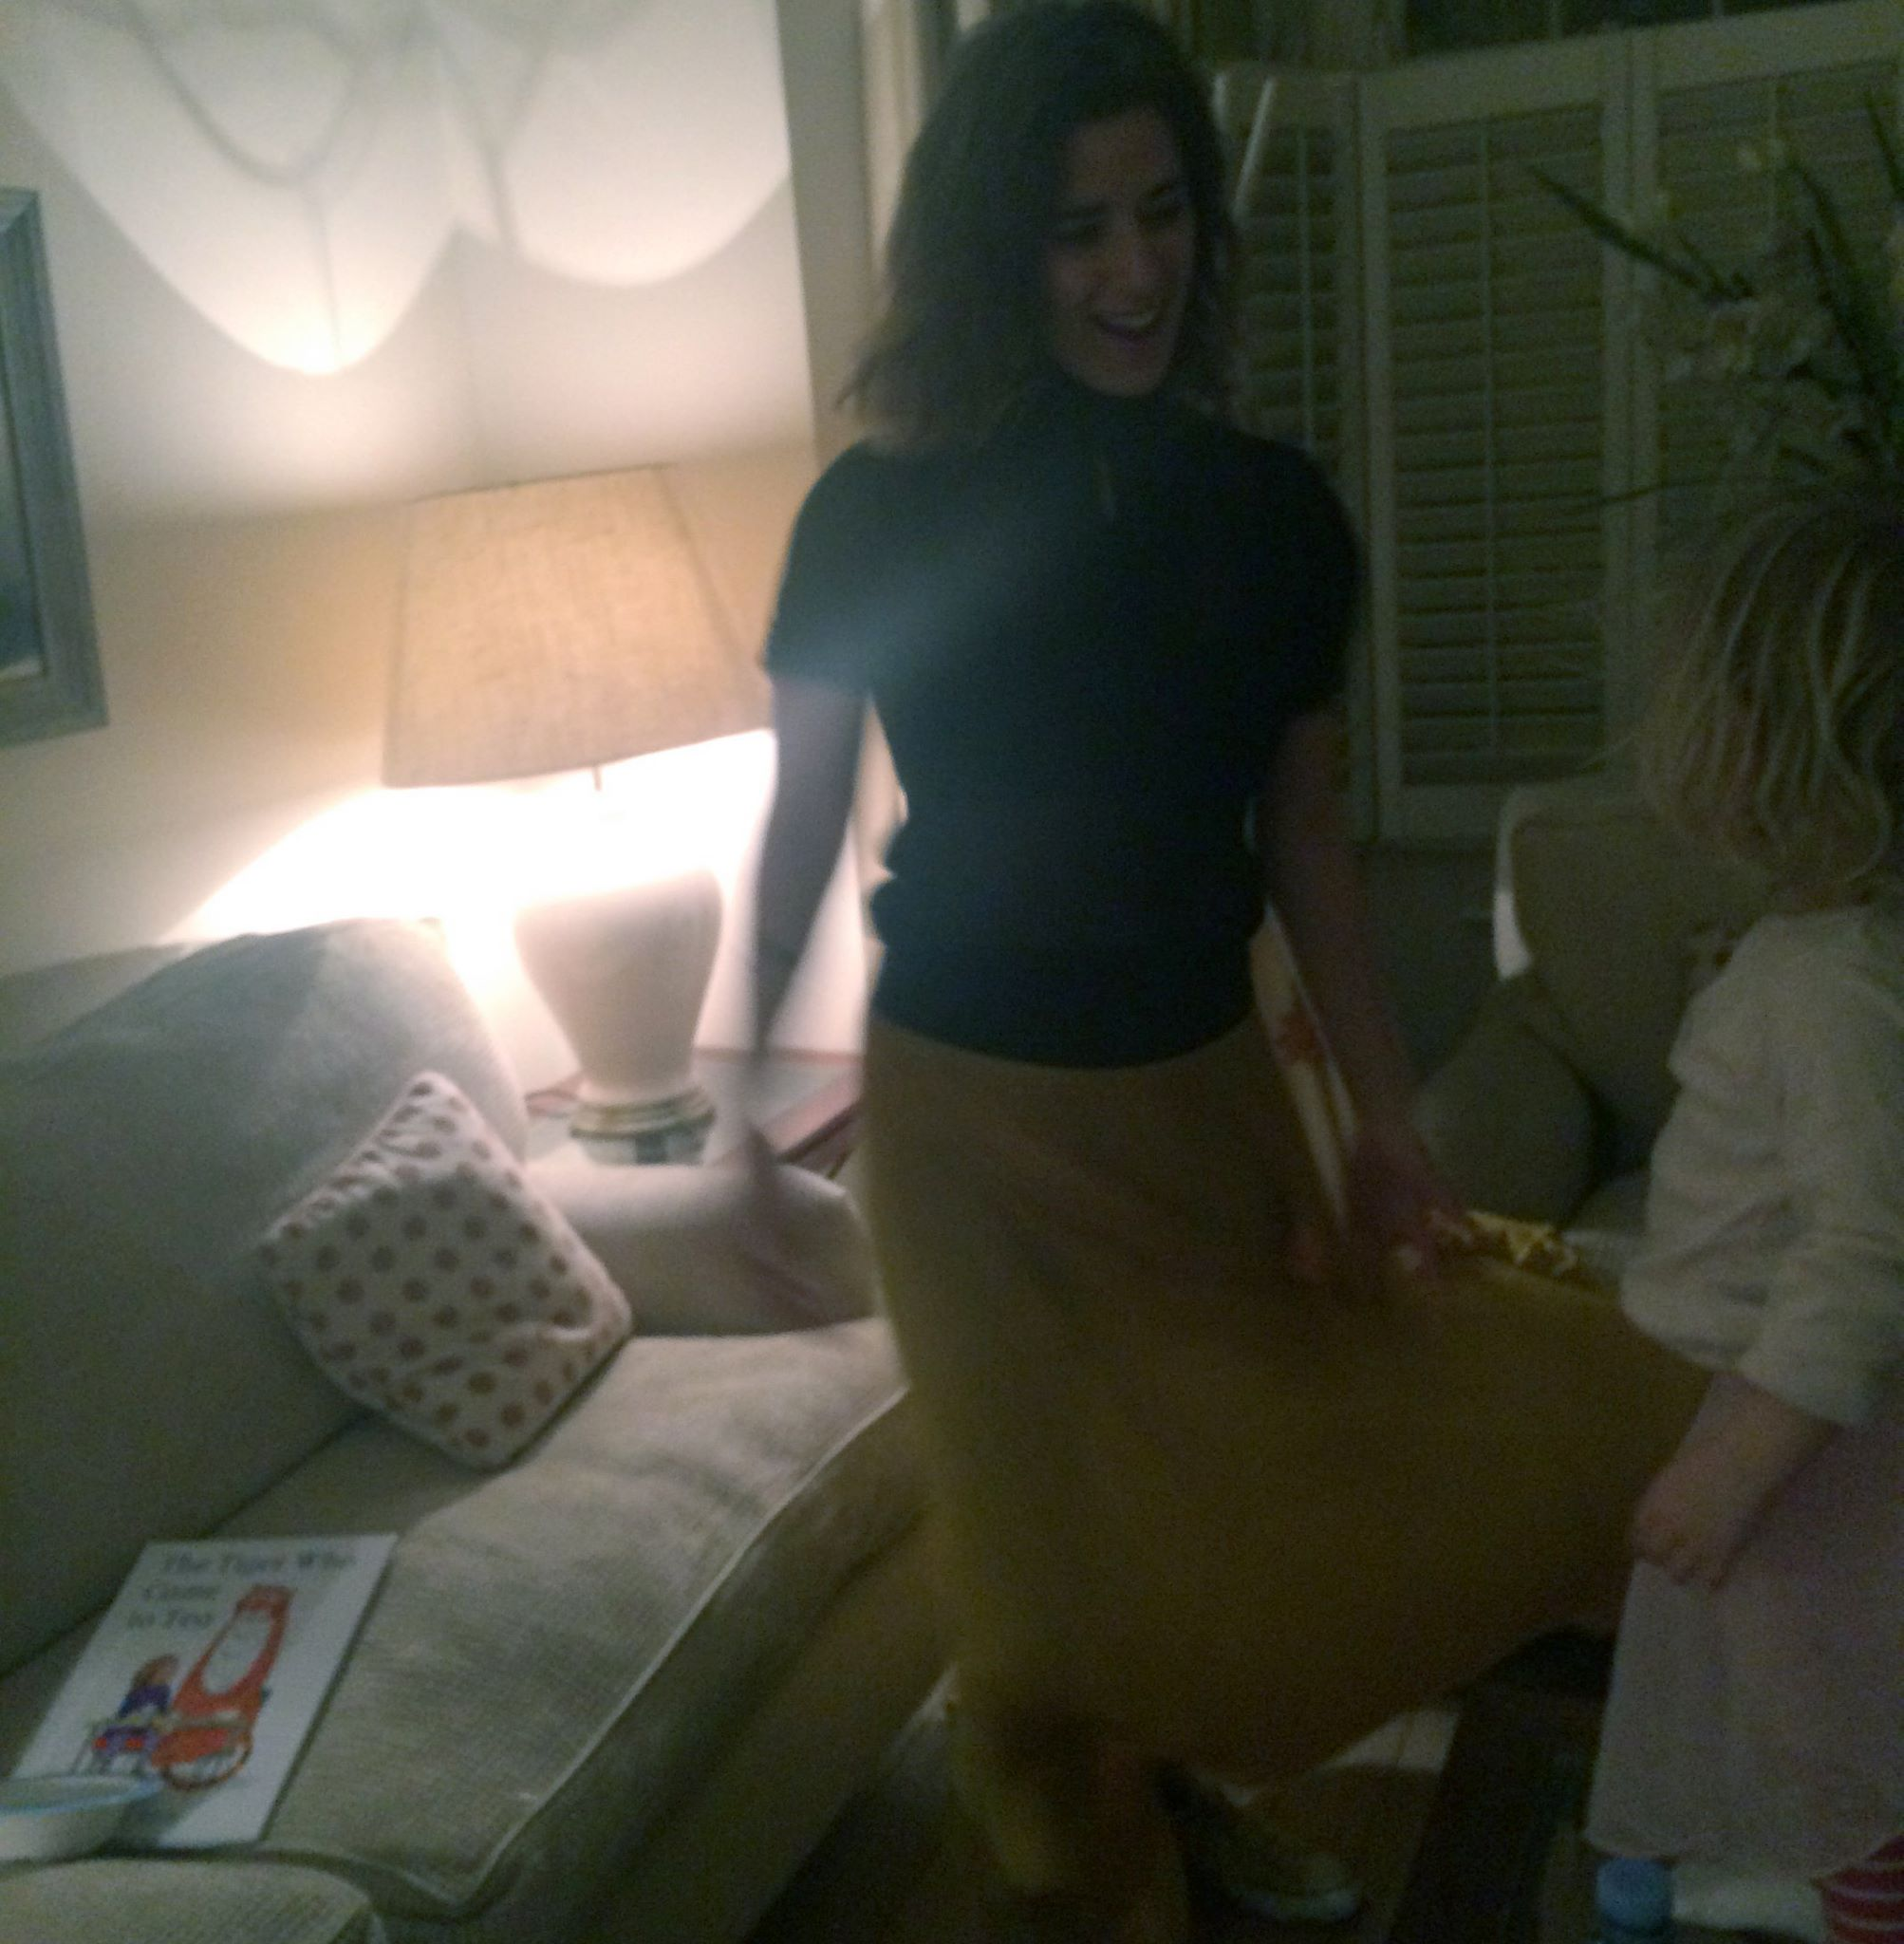 dancing with evie yellow skirt.jpg